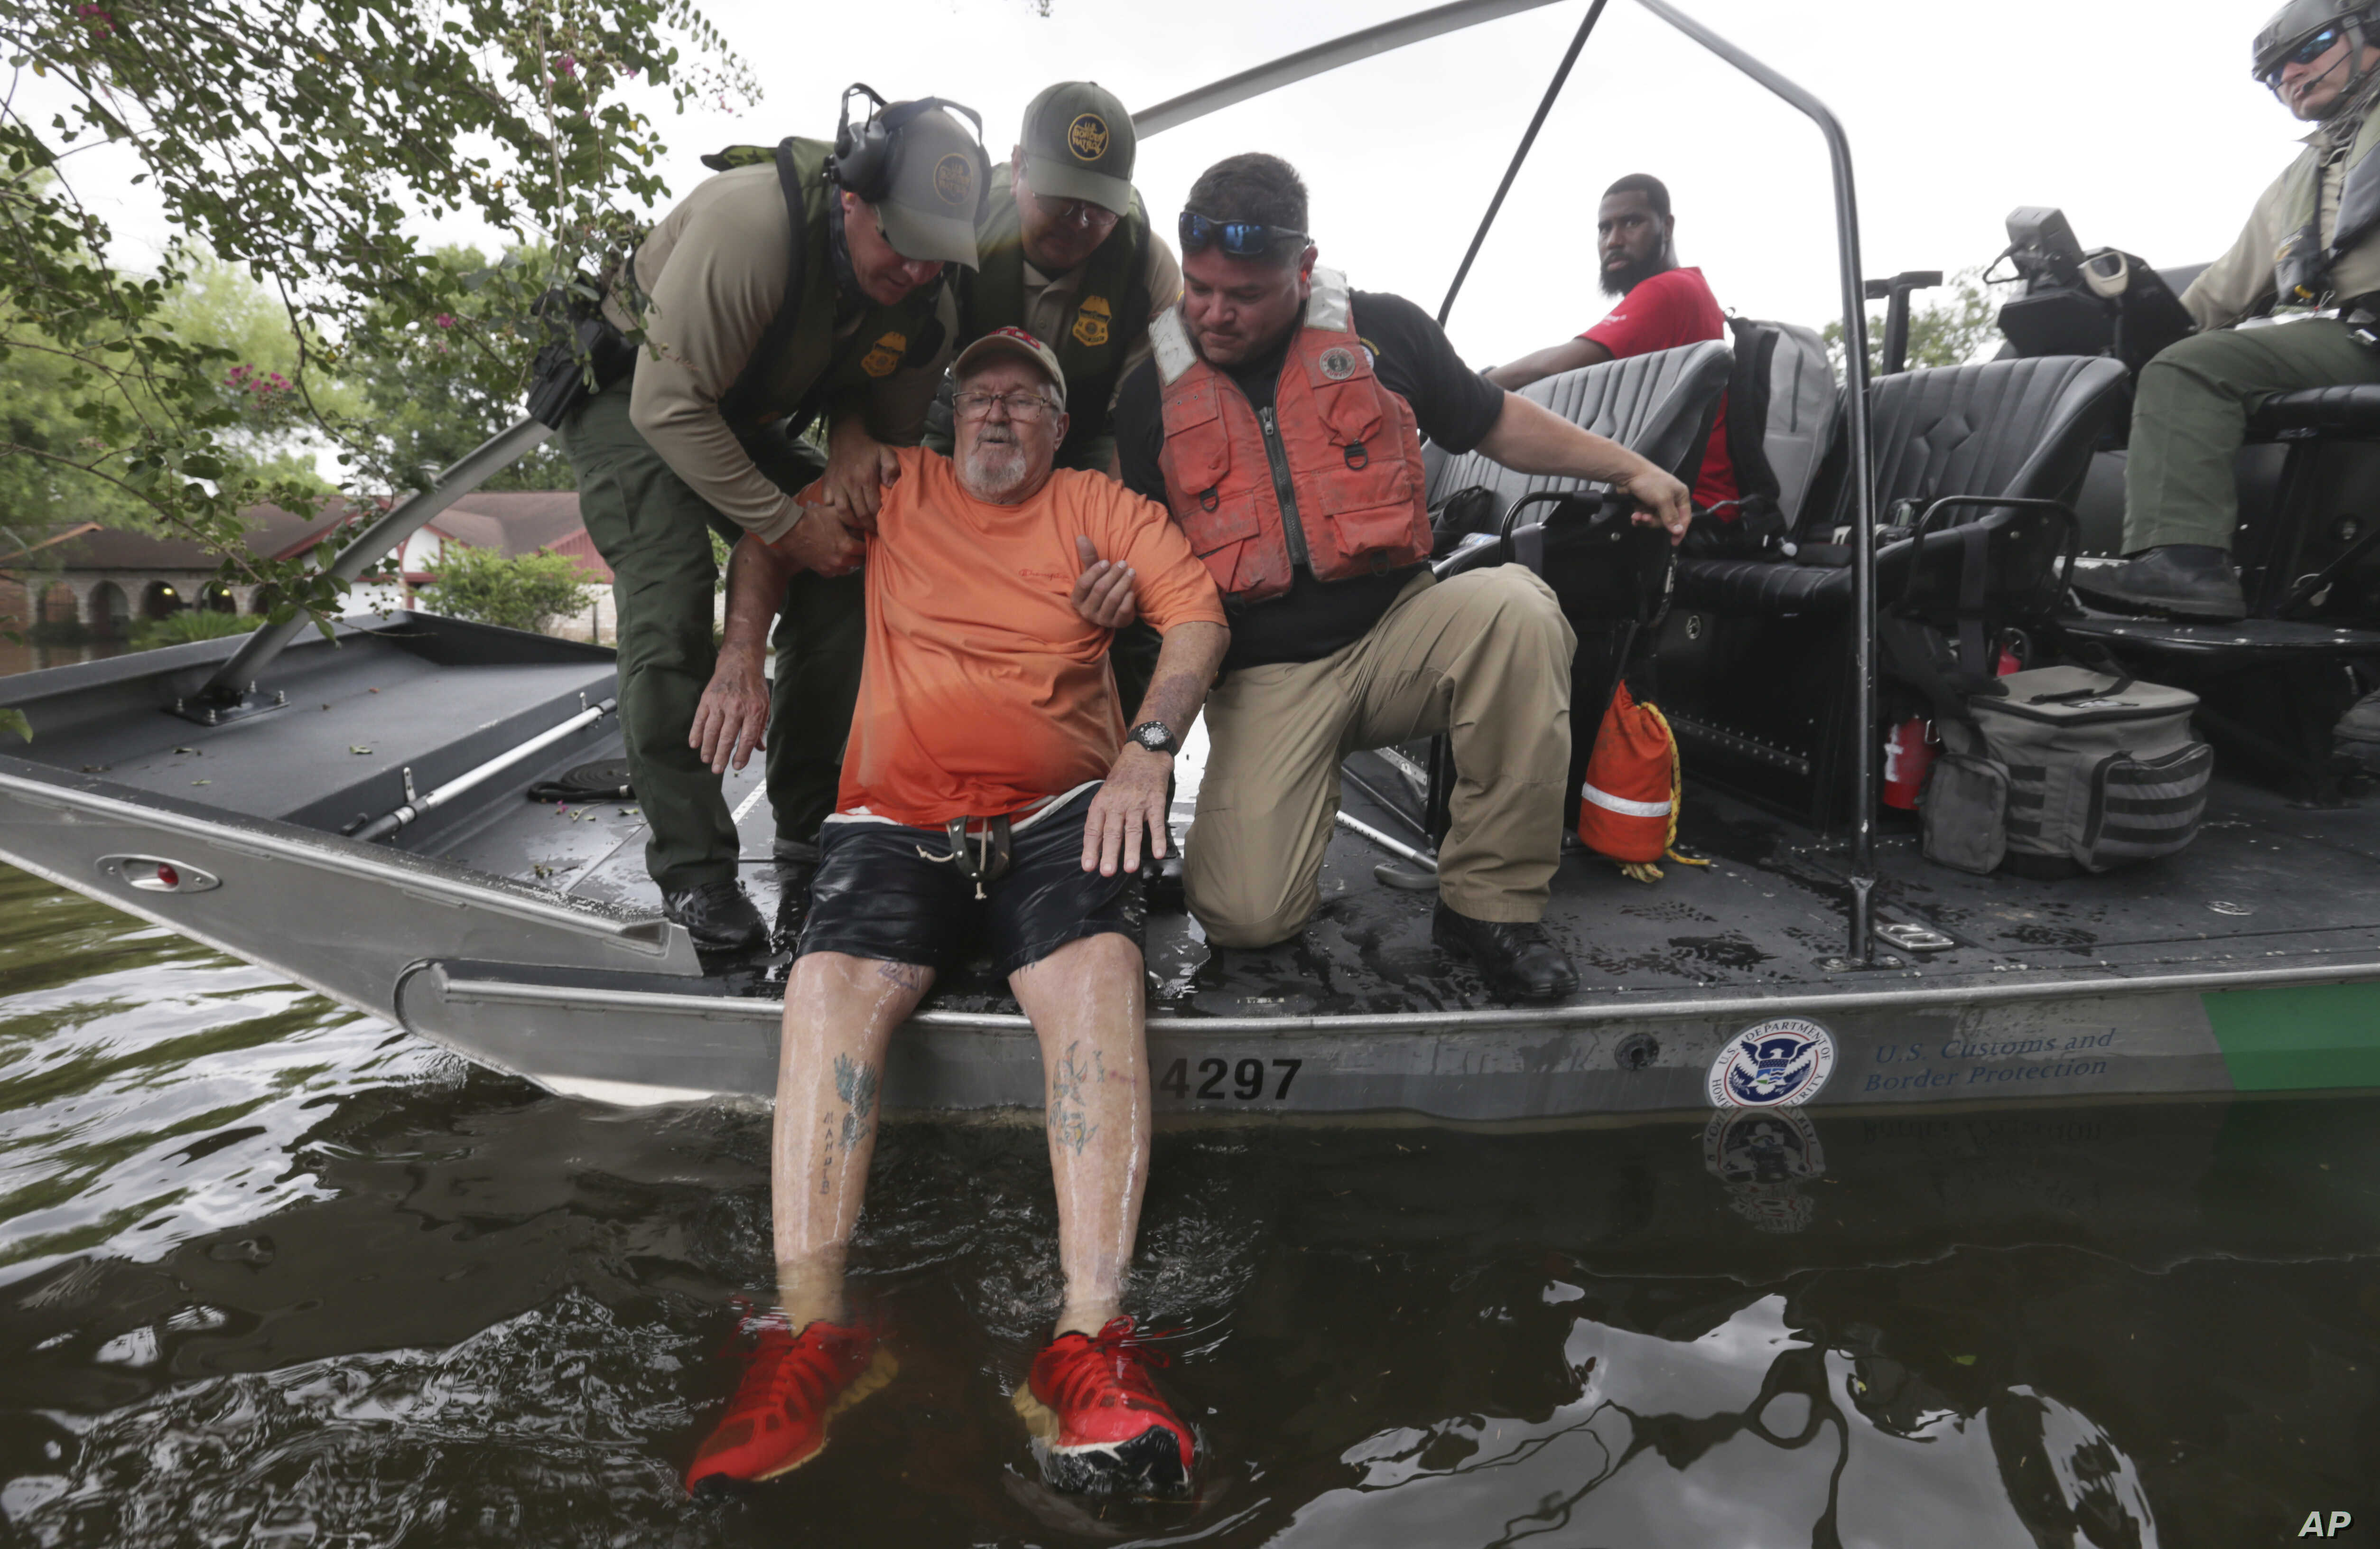 John Paul Klotz, 80, is pulled on a boat by U.S. Border Patrol Agents Steven Blackburn, left, Ramiro Rodriguez, top center, and Juan Flores during a search-and-rescue operation in a neighborhood inundated by floodwaters from Tropical Storm Harvey in ...